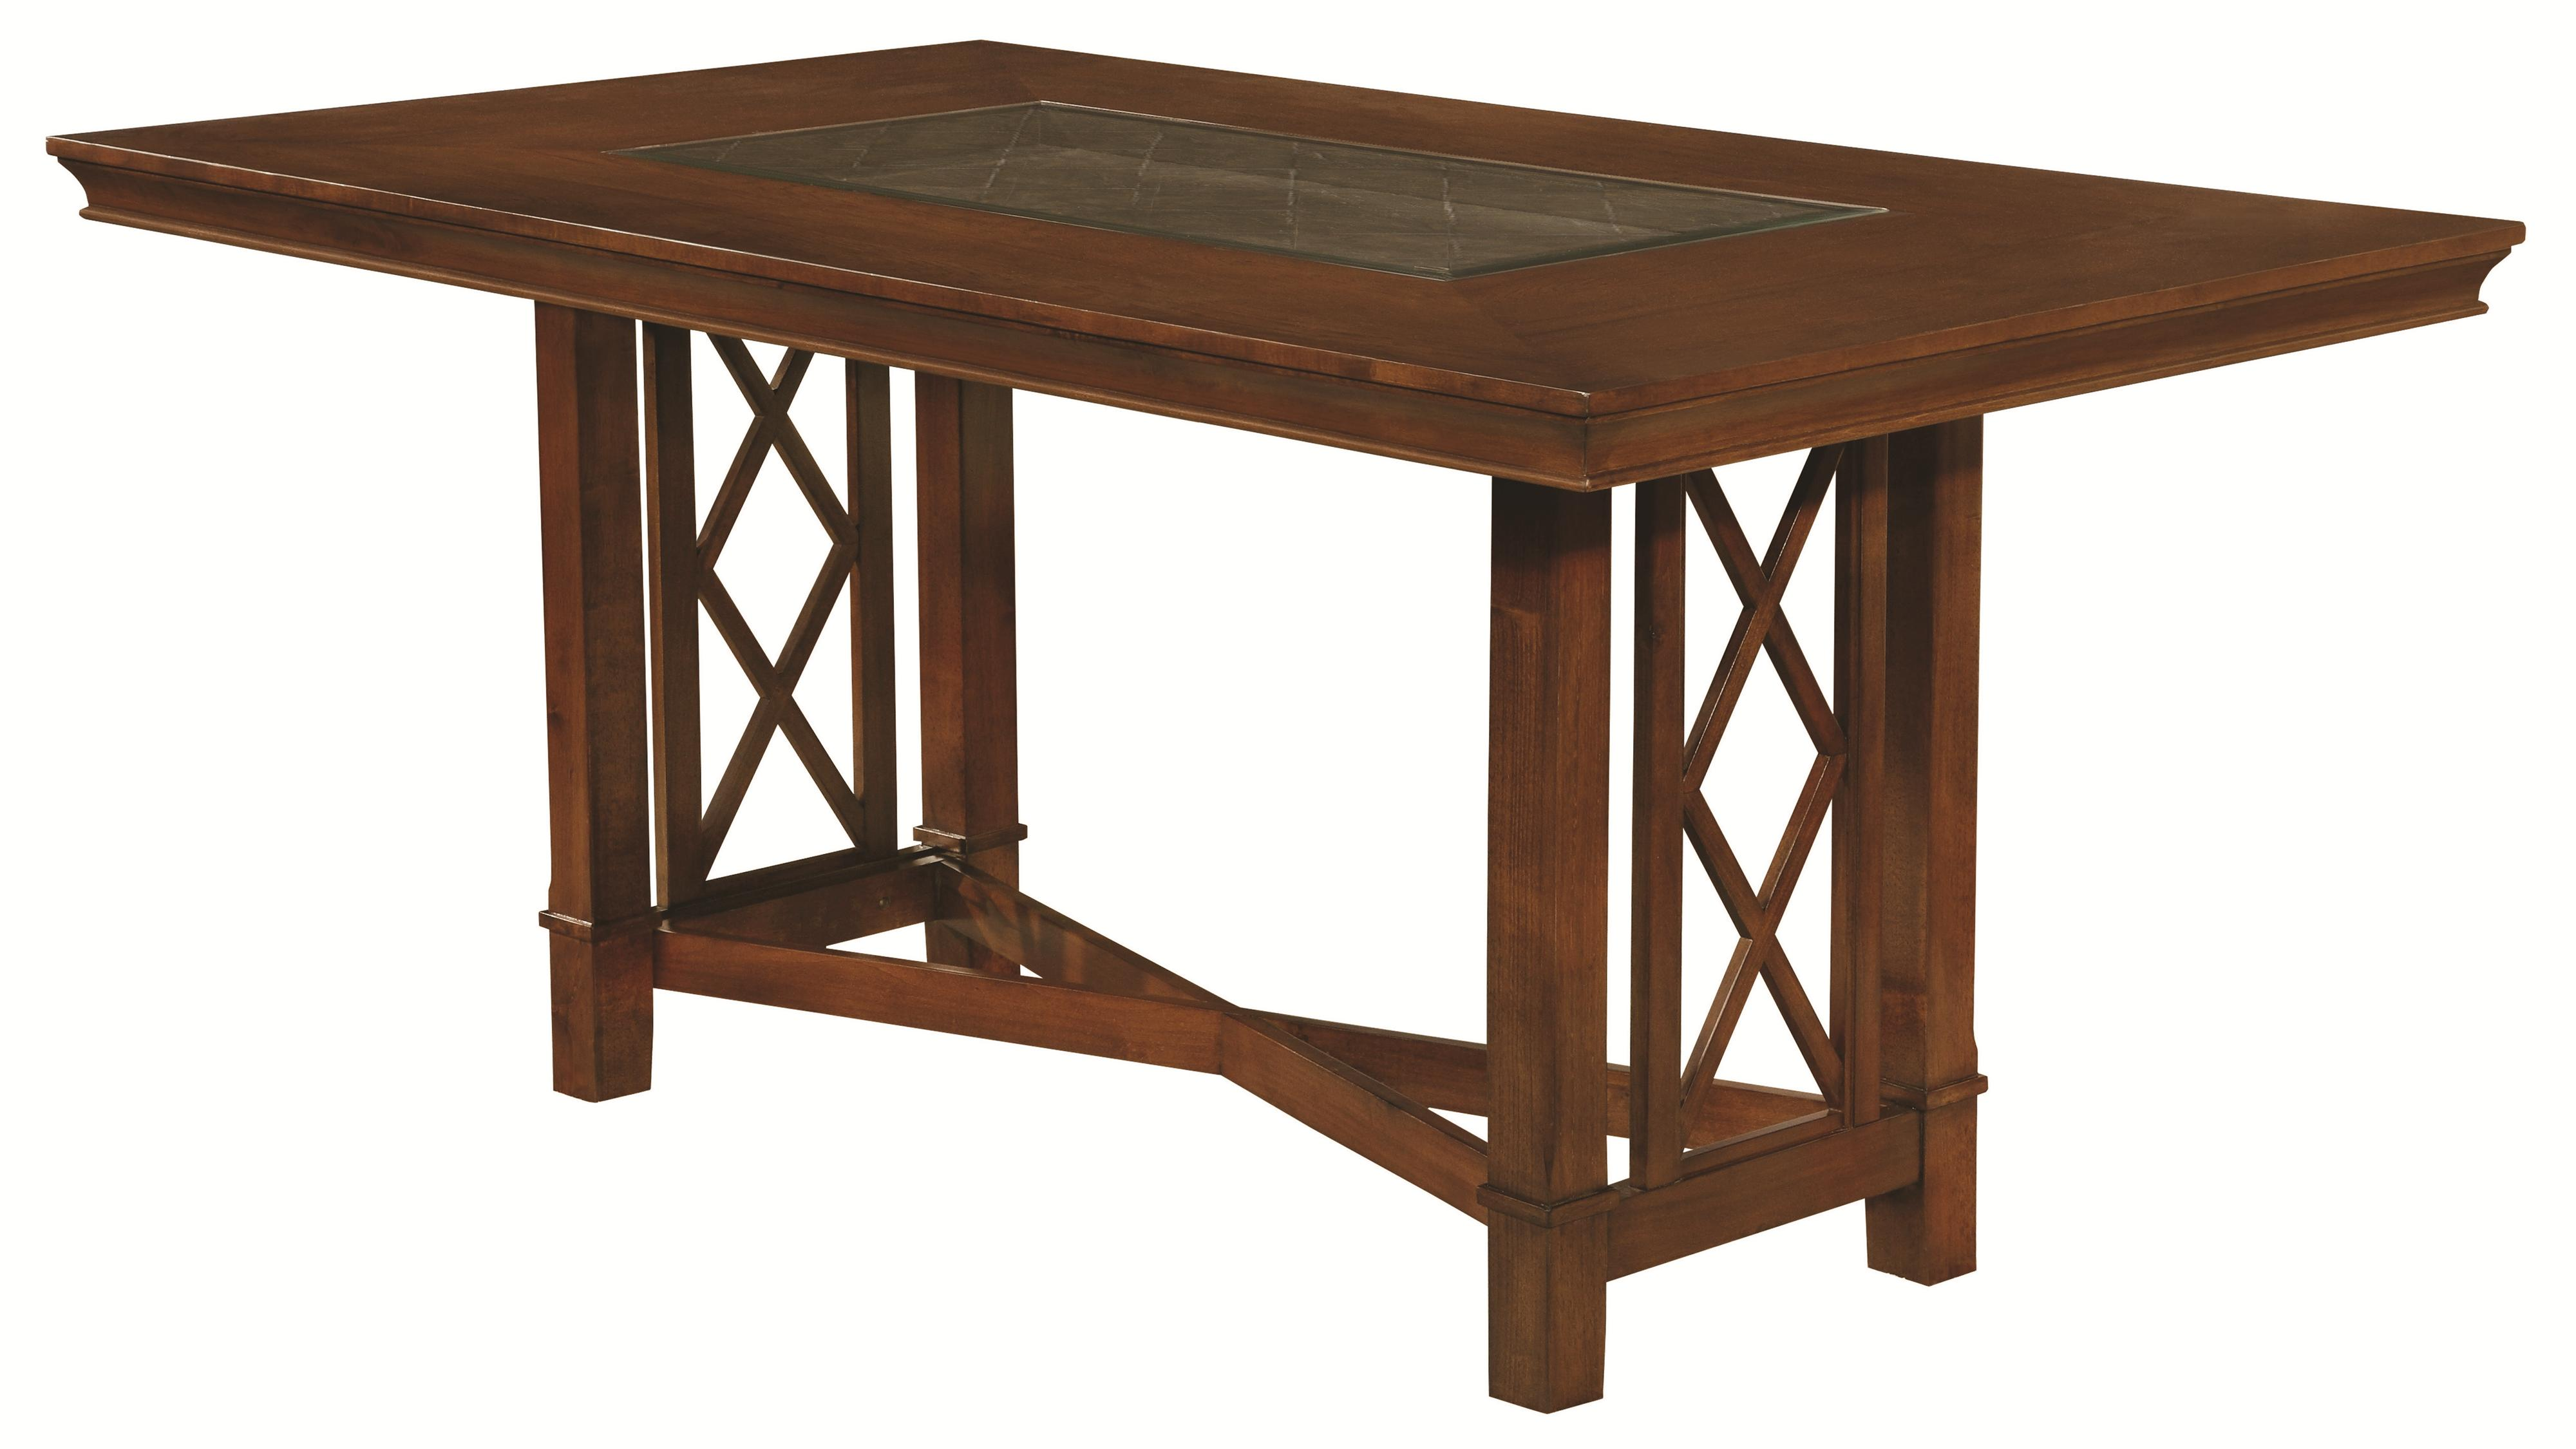 Pembrook 7 piece transitional style counter height table for Table height stools